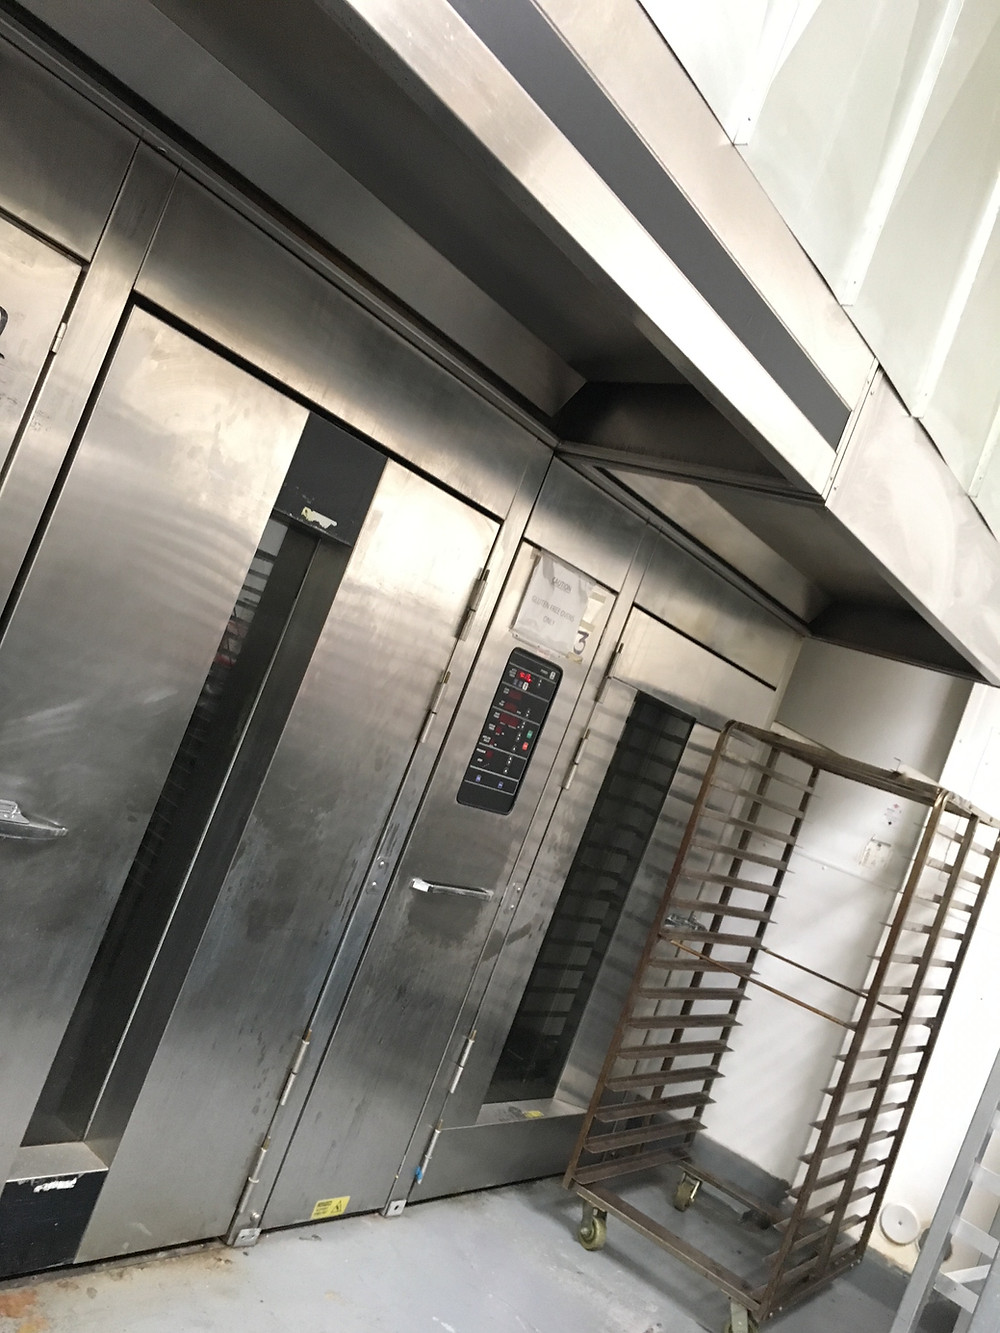 Rack Ovens at Hana Kitchens Orange County - Commercial kitchens for rent